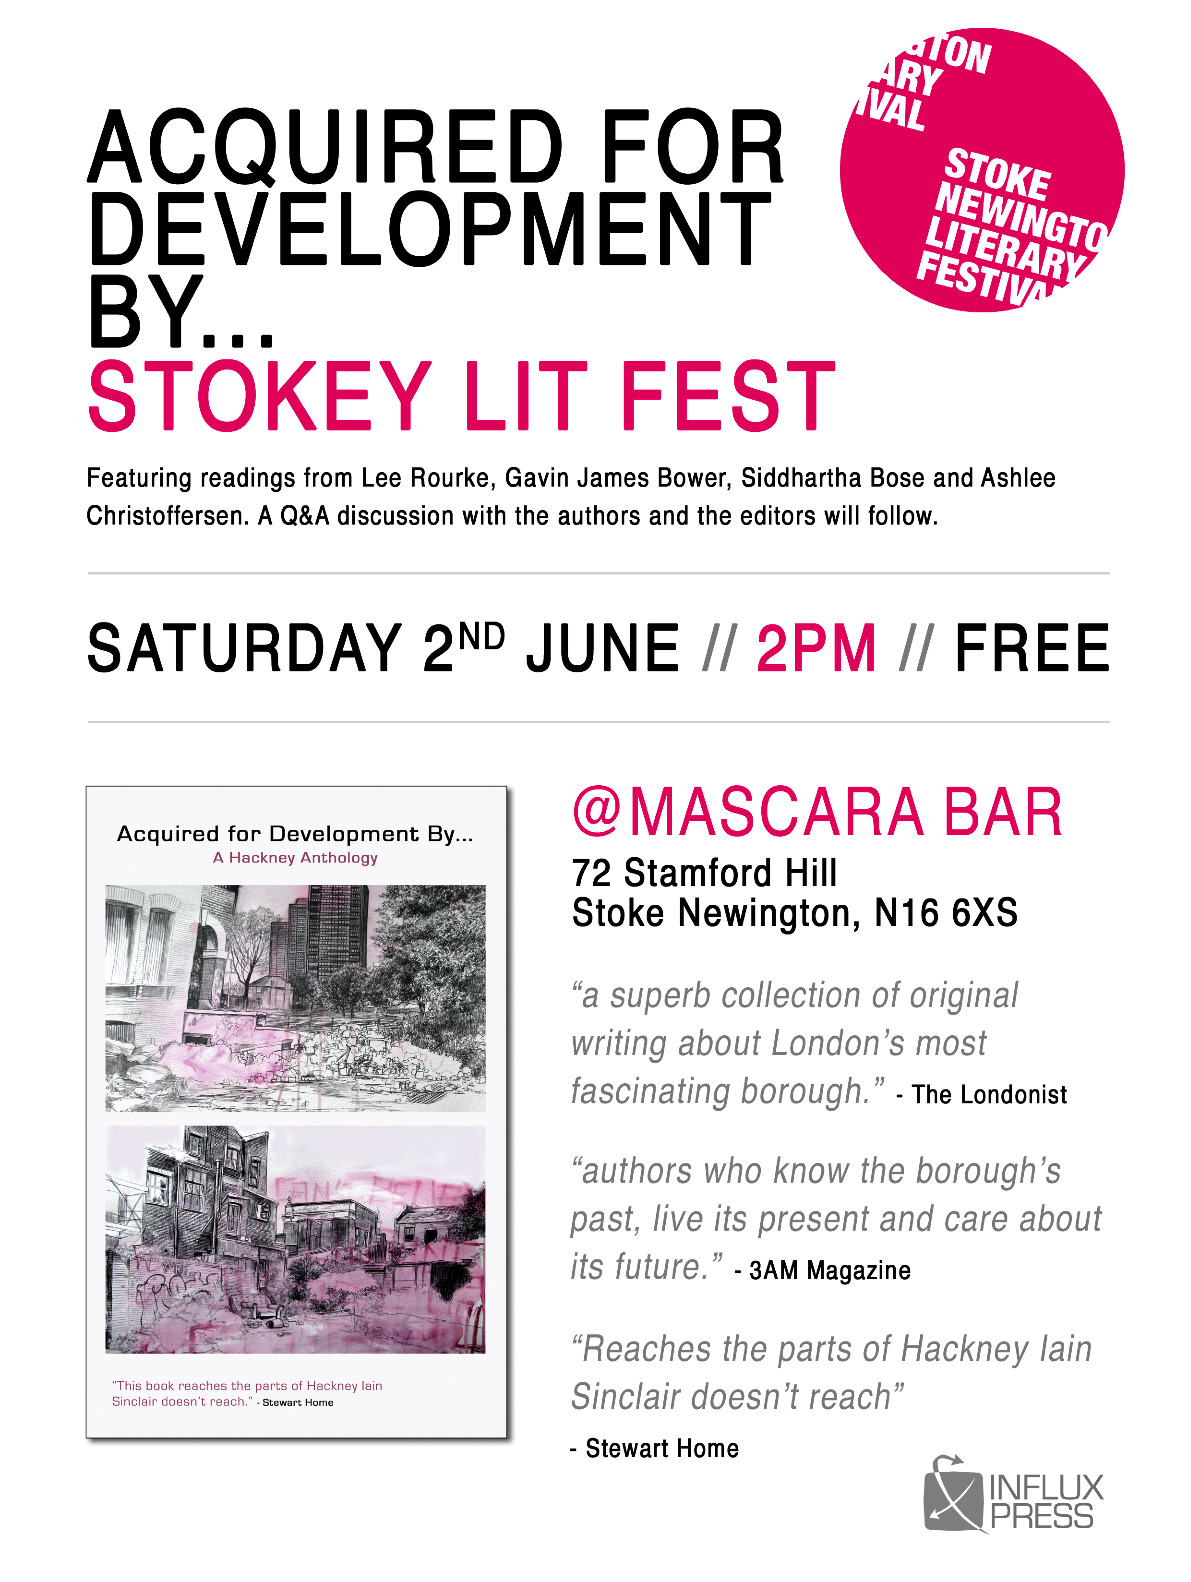 Gavin James Bower reading at Stoke Newington Literary Festival, Saturday 2nd June